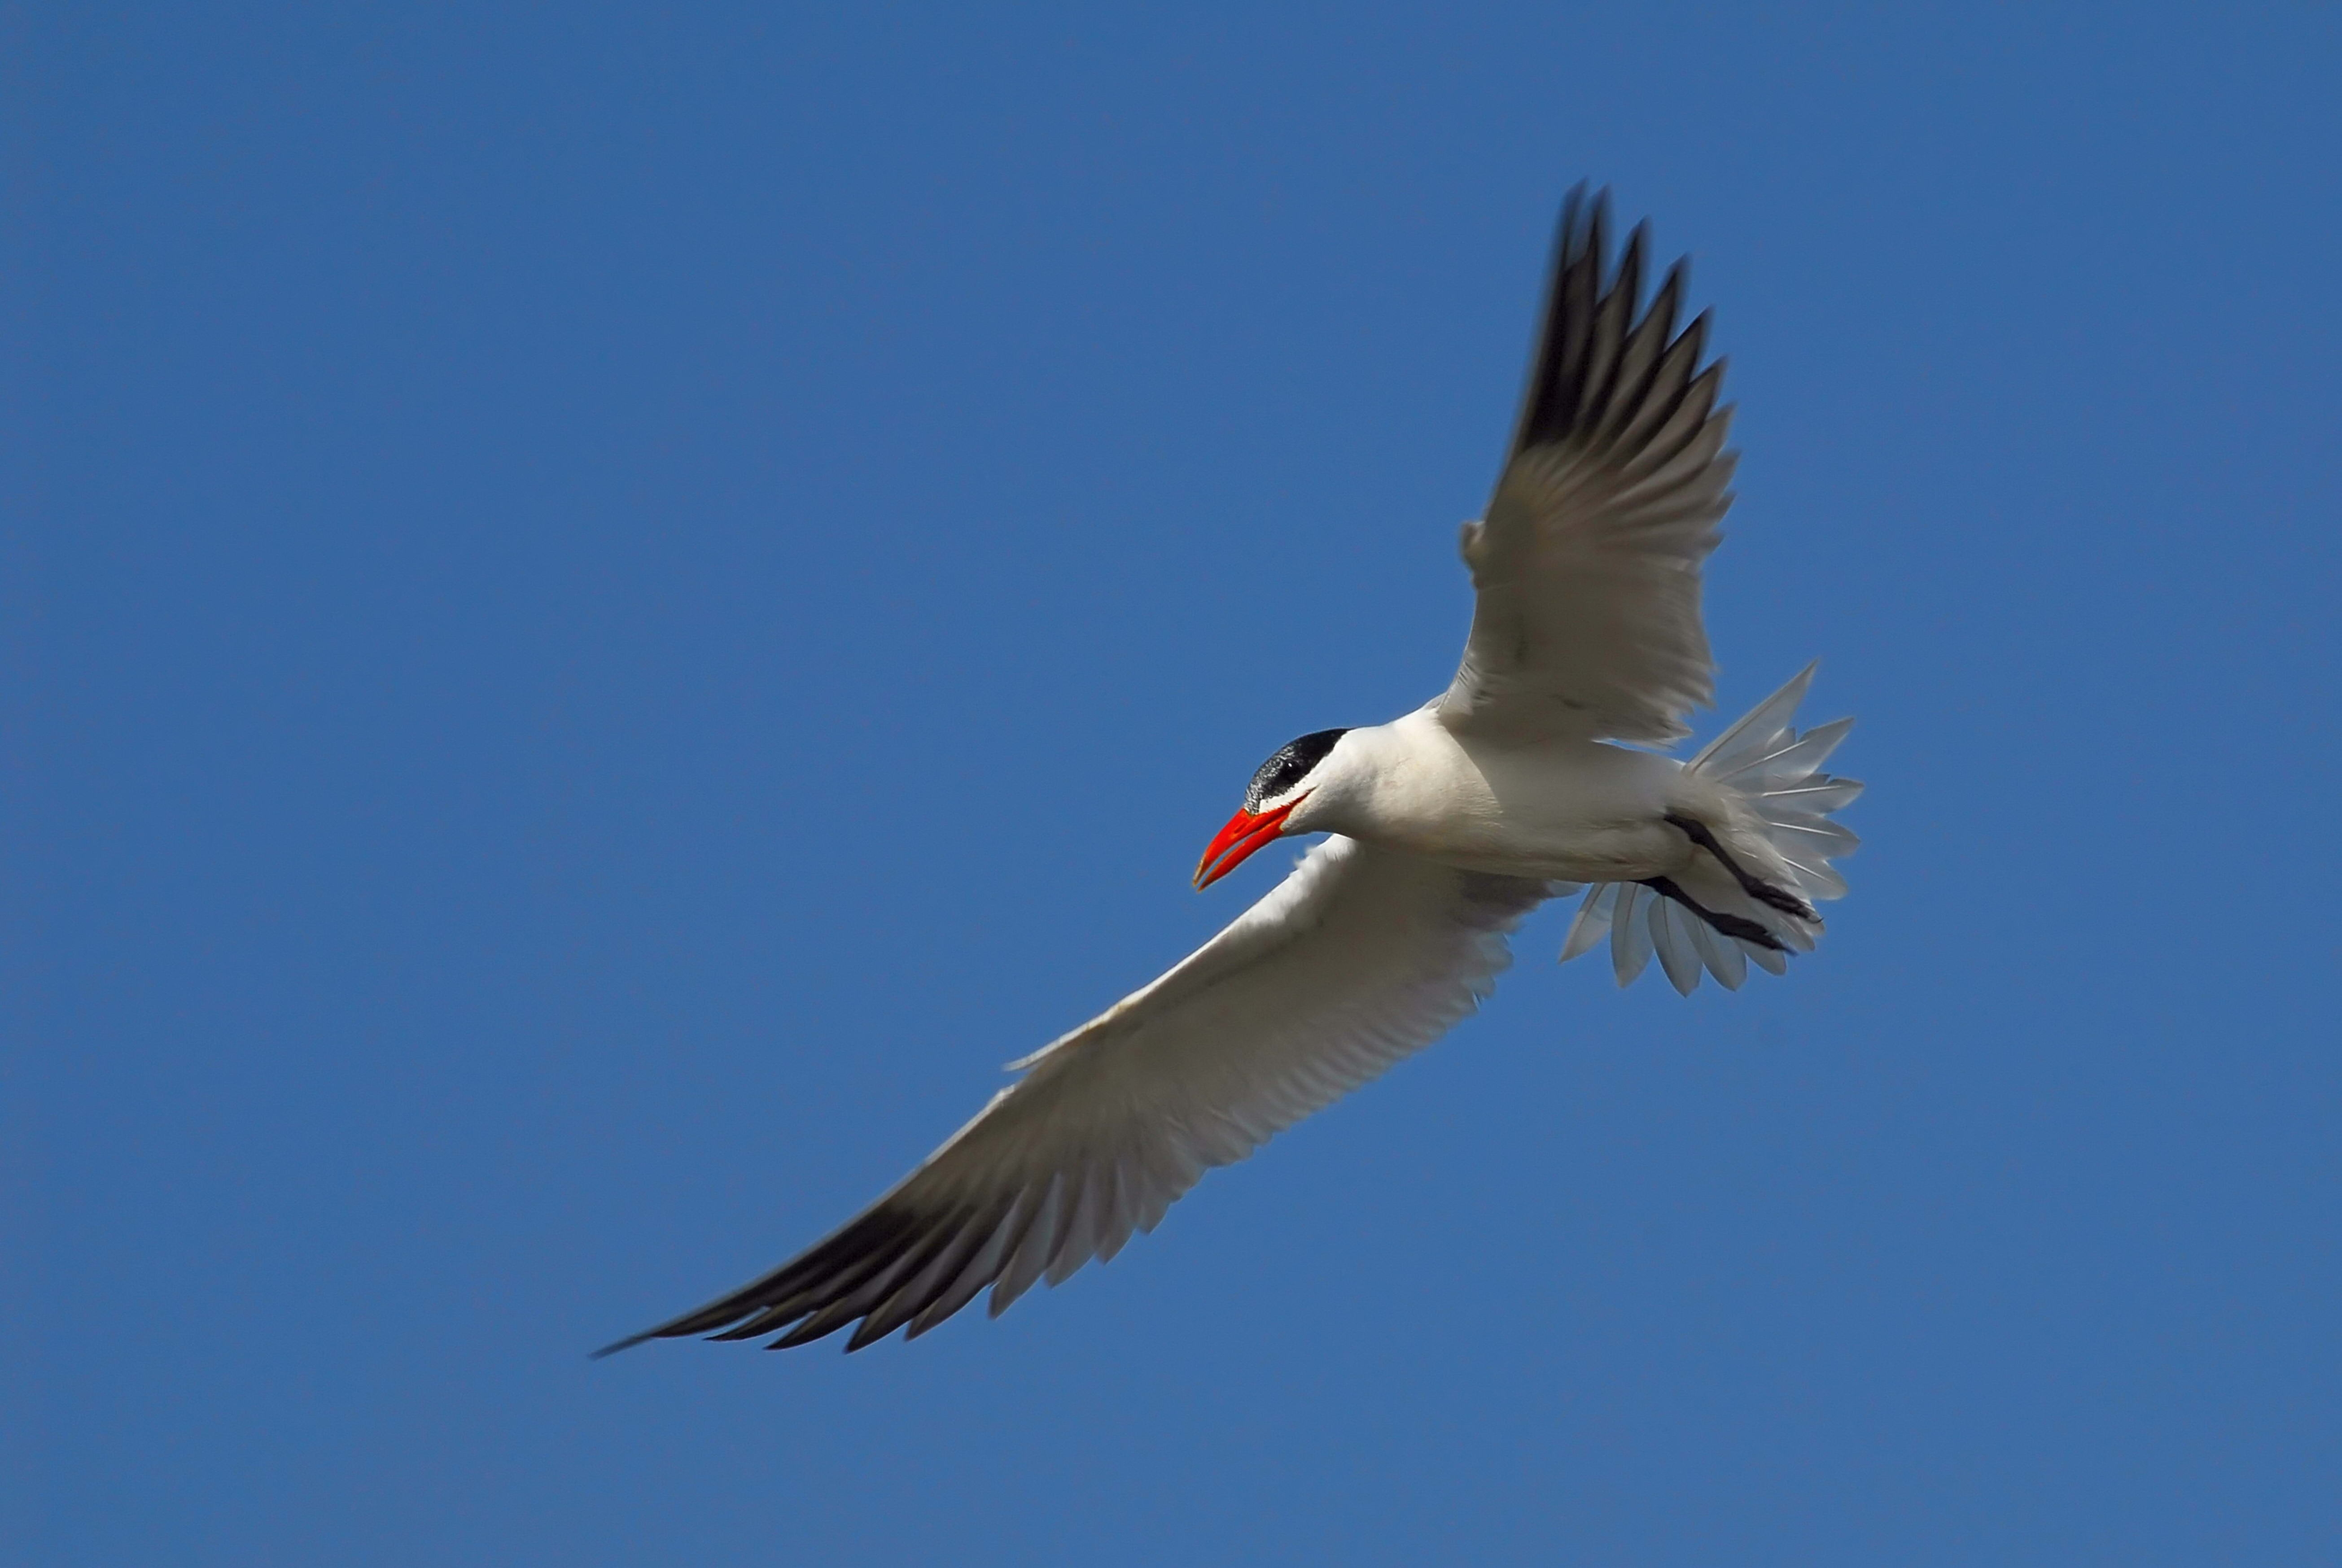 82692 download wallpaper Animals, Gull, Seagull, Sky, Flight screensavers and pictures for free